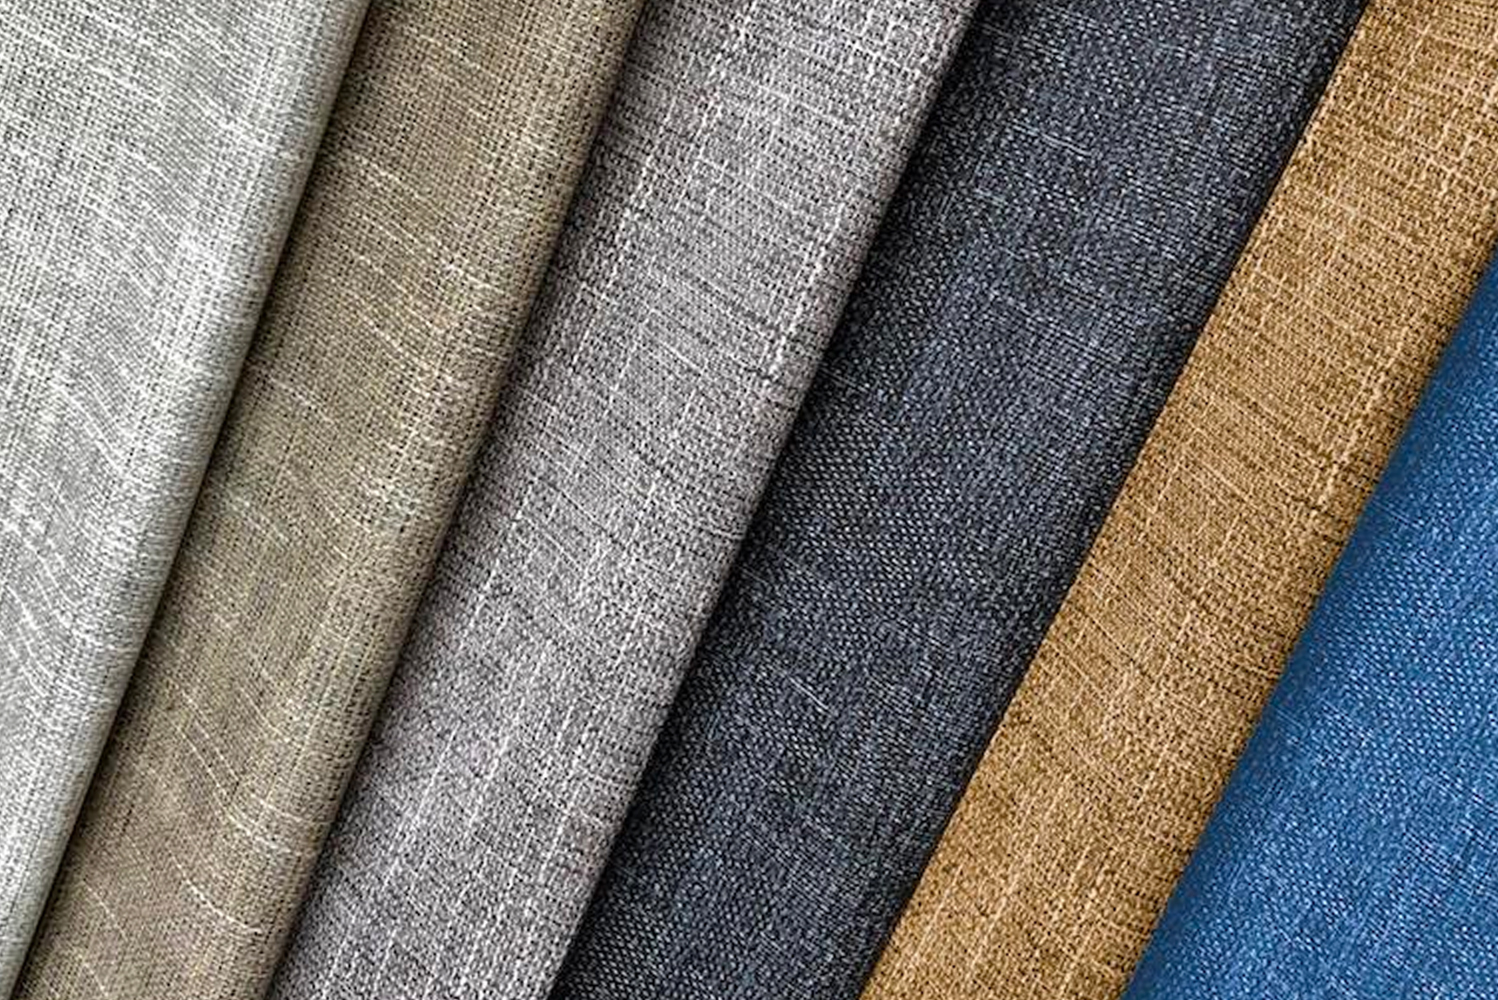 Morbern launched its newest performance coated fabric, Americana, inspired by classic menswear.